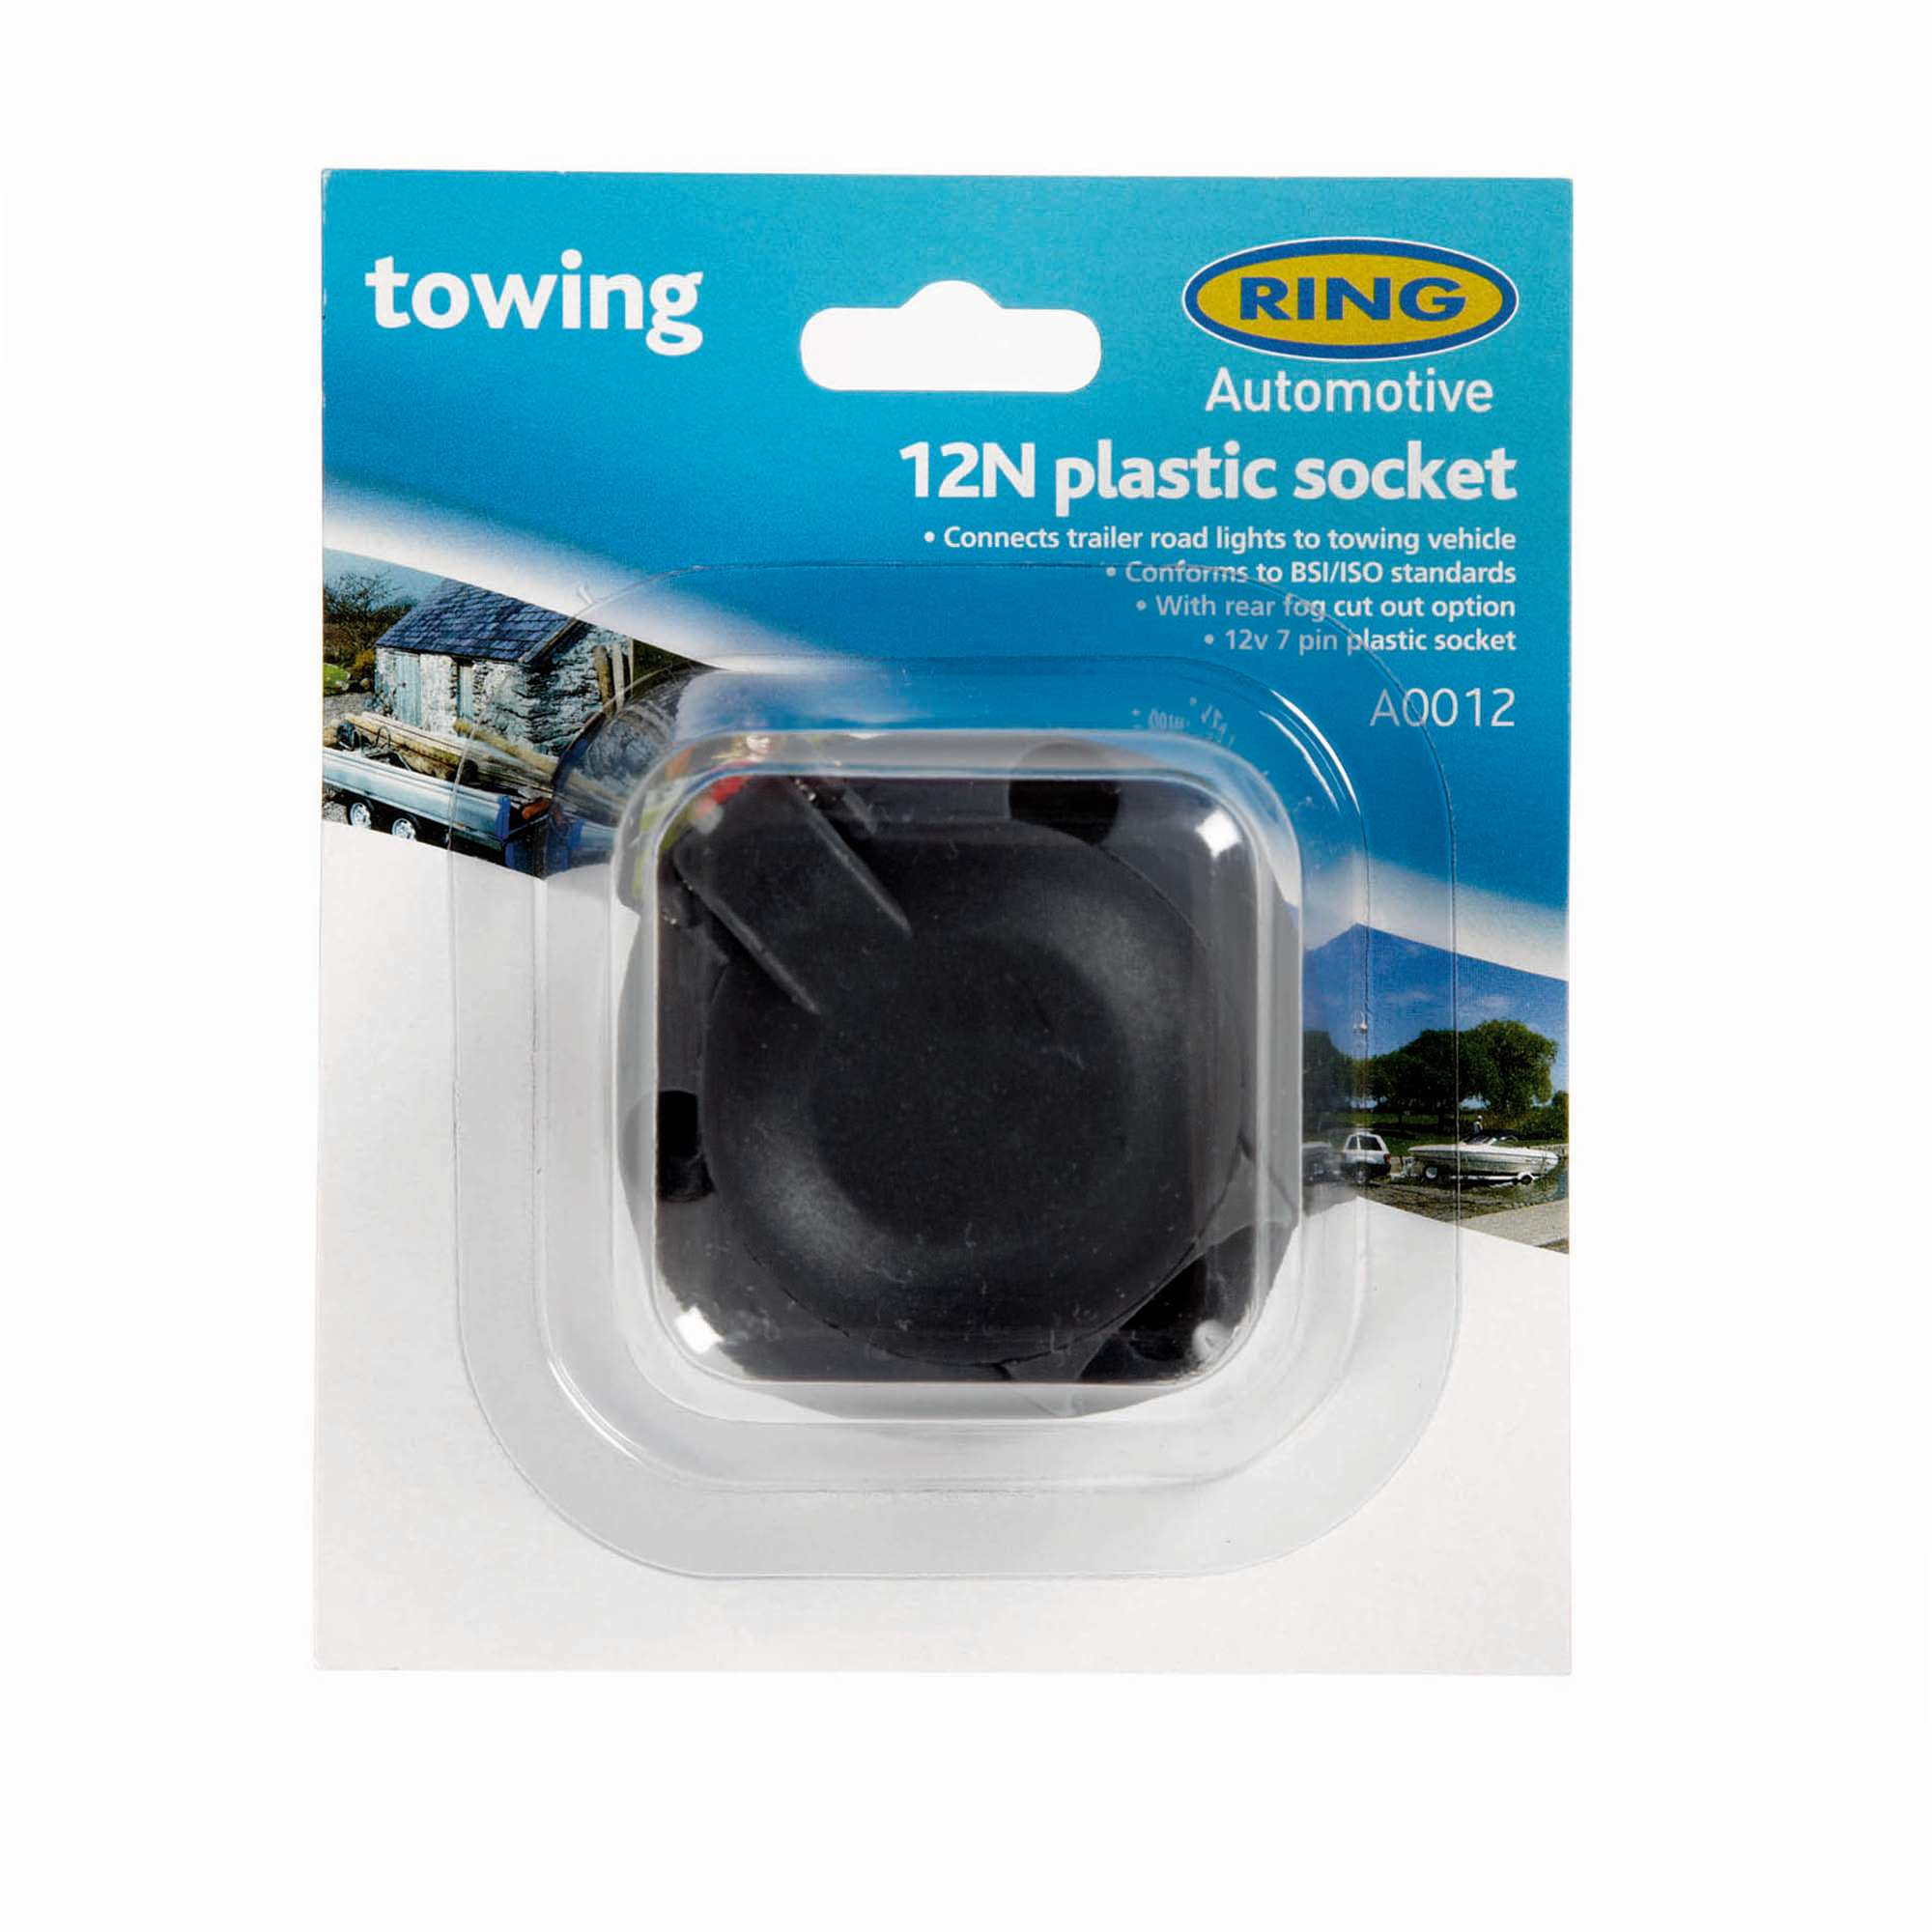 RING 12N 7 Pin Plastic Socket with Fog Cut Out (A0012)